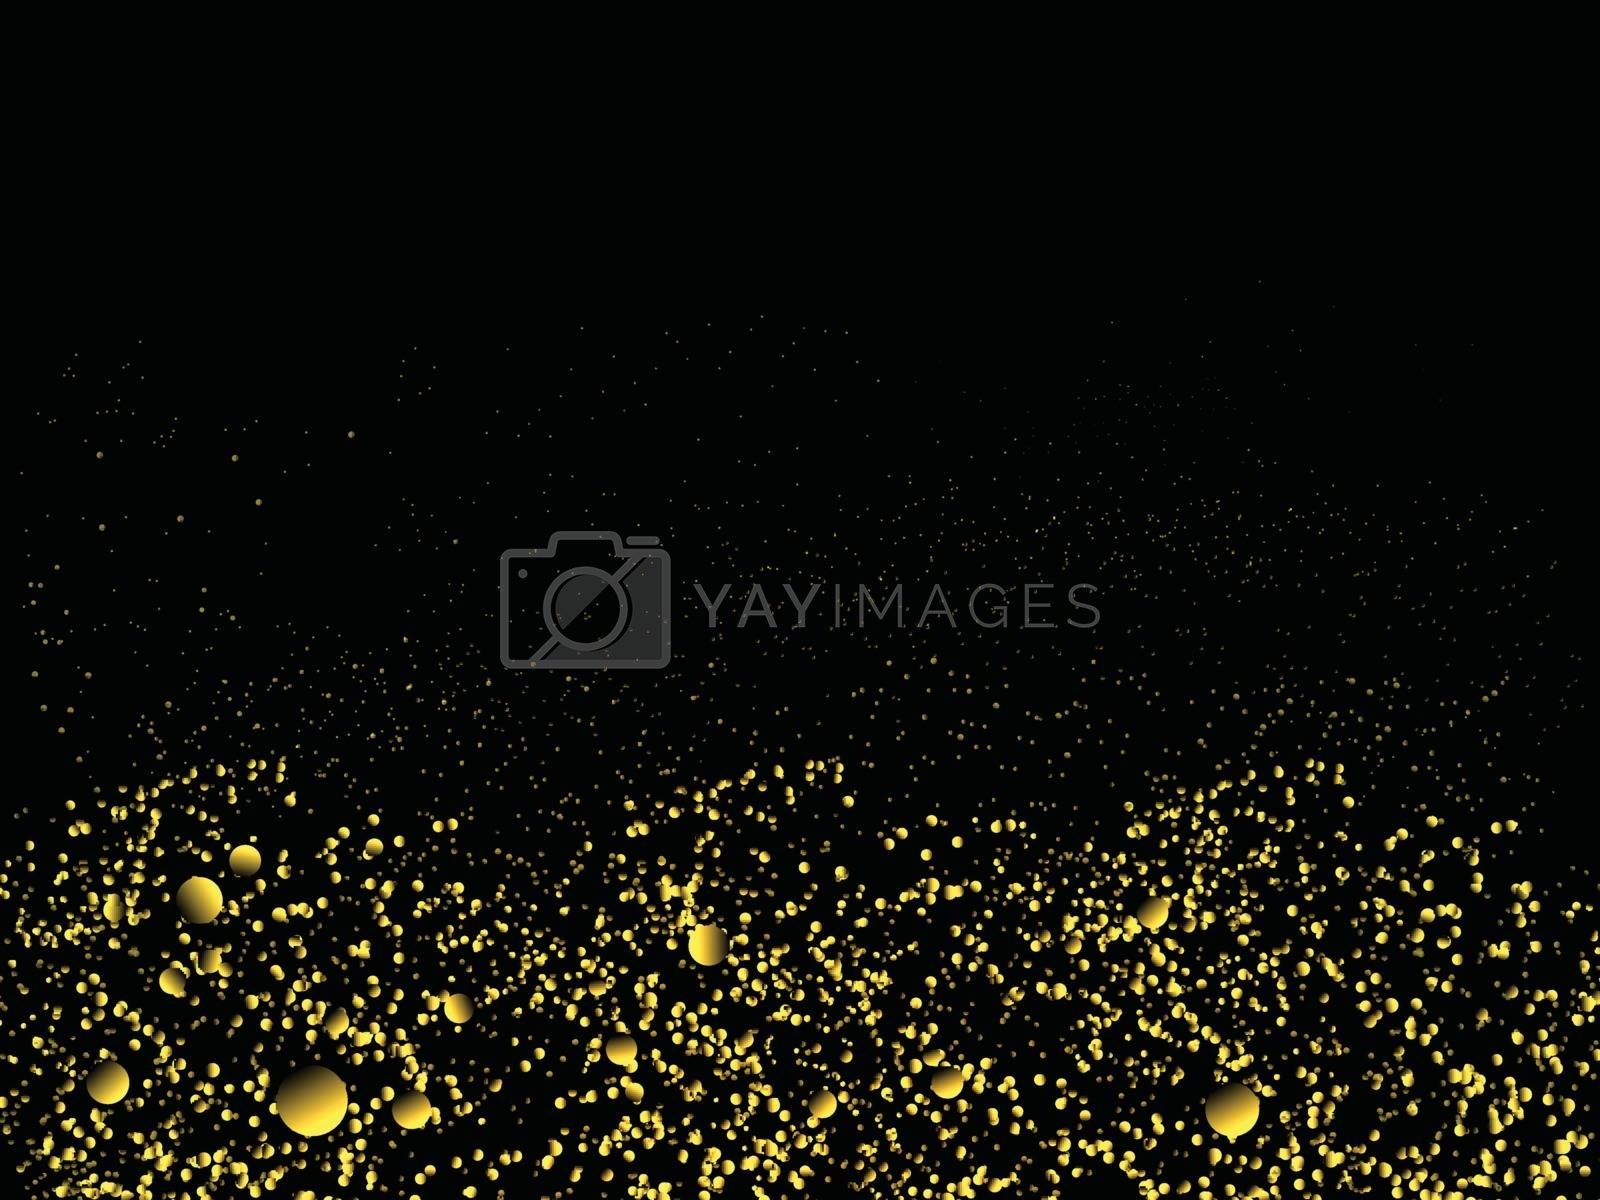 Gold glitter dust scattered background. Elegant sparkling effect or texture.